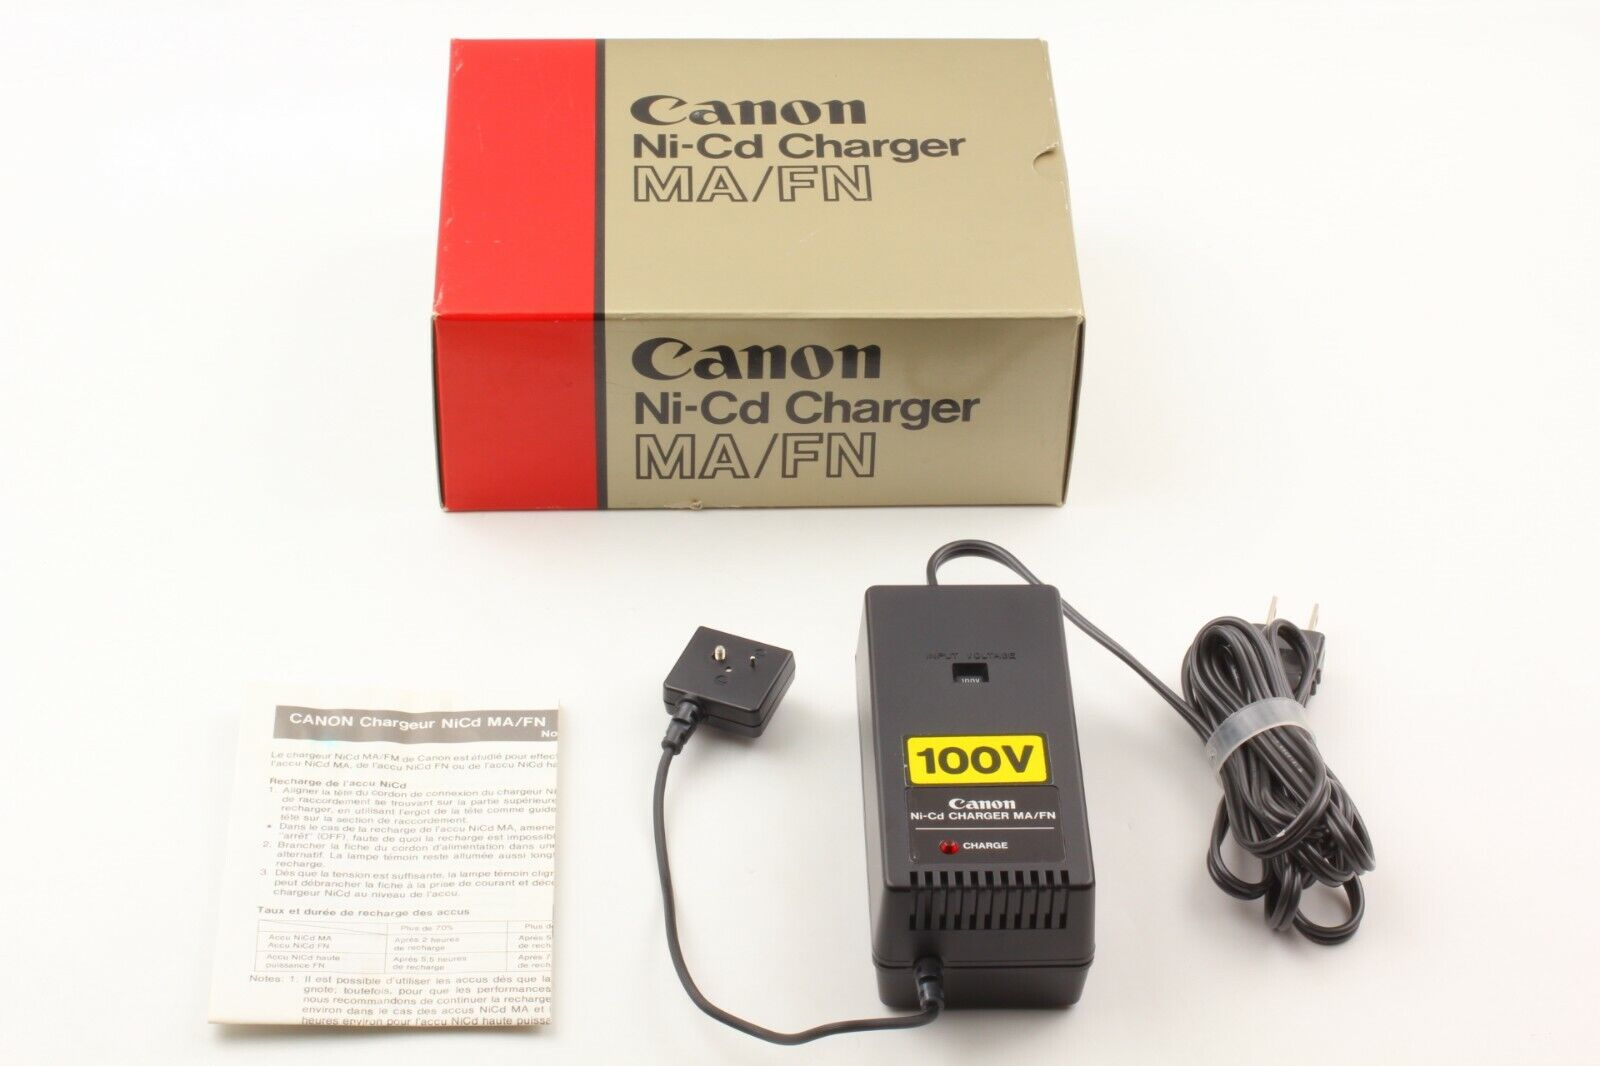 【MINT in Box】Canon 100V Ni-Cd Charger MA/FN From Japan #574